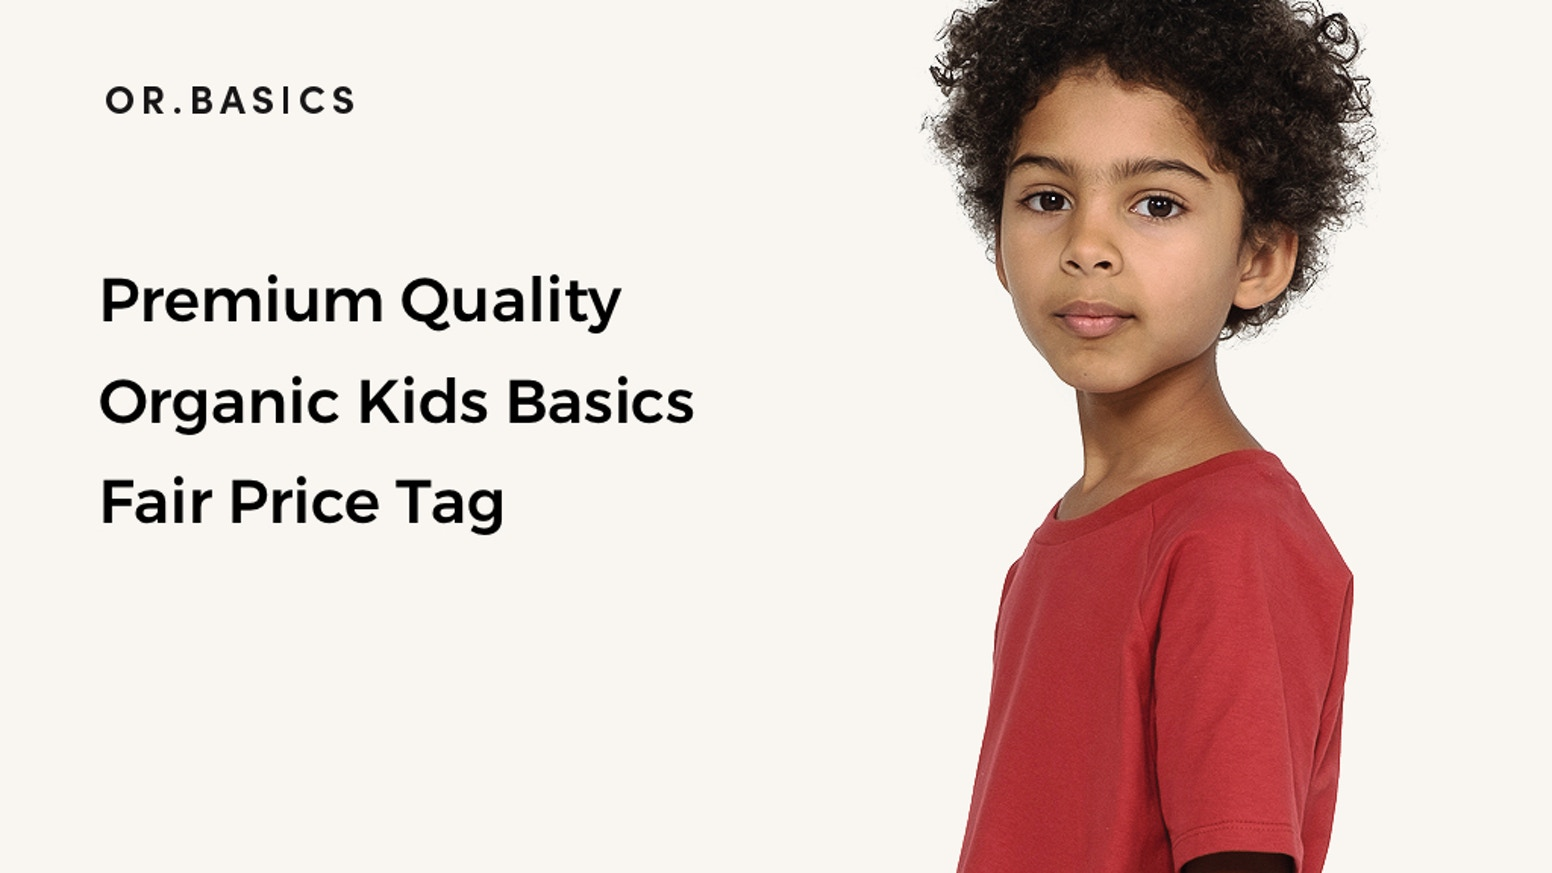 Premium quality organic basics for kids. Sustainably produced in Europe. Delivered to your doorstep, at an affordable price.